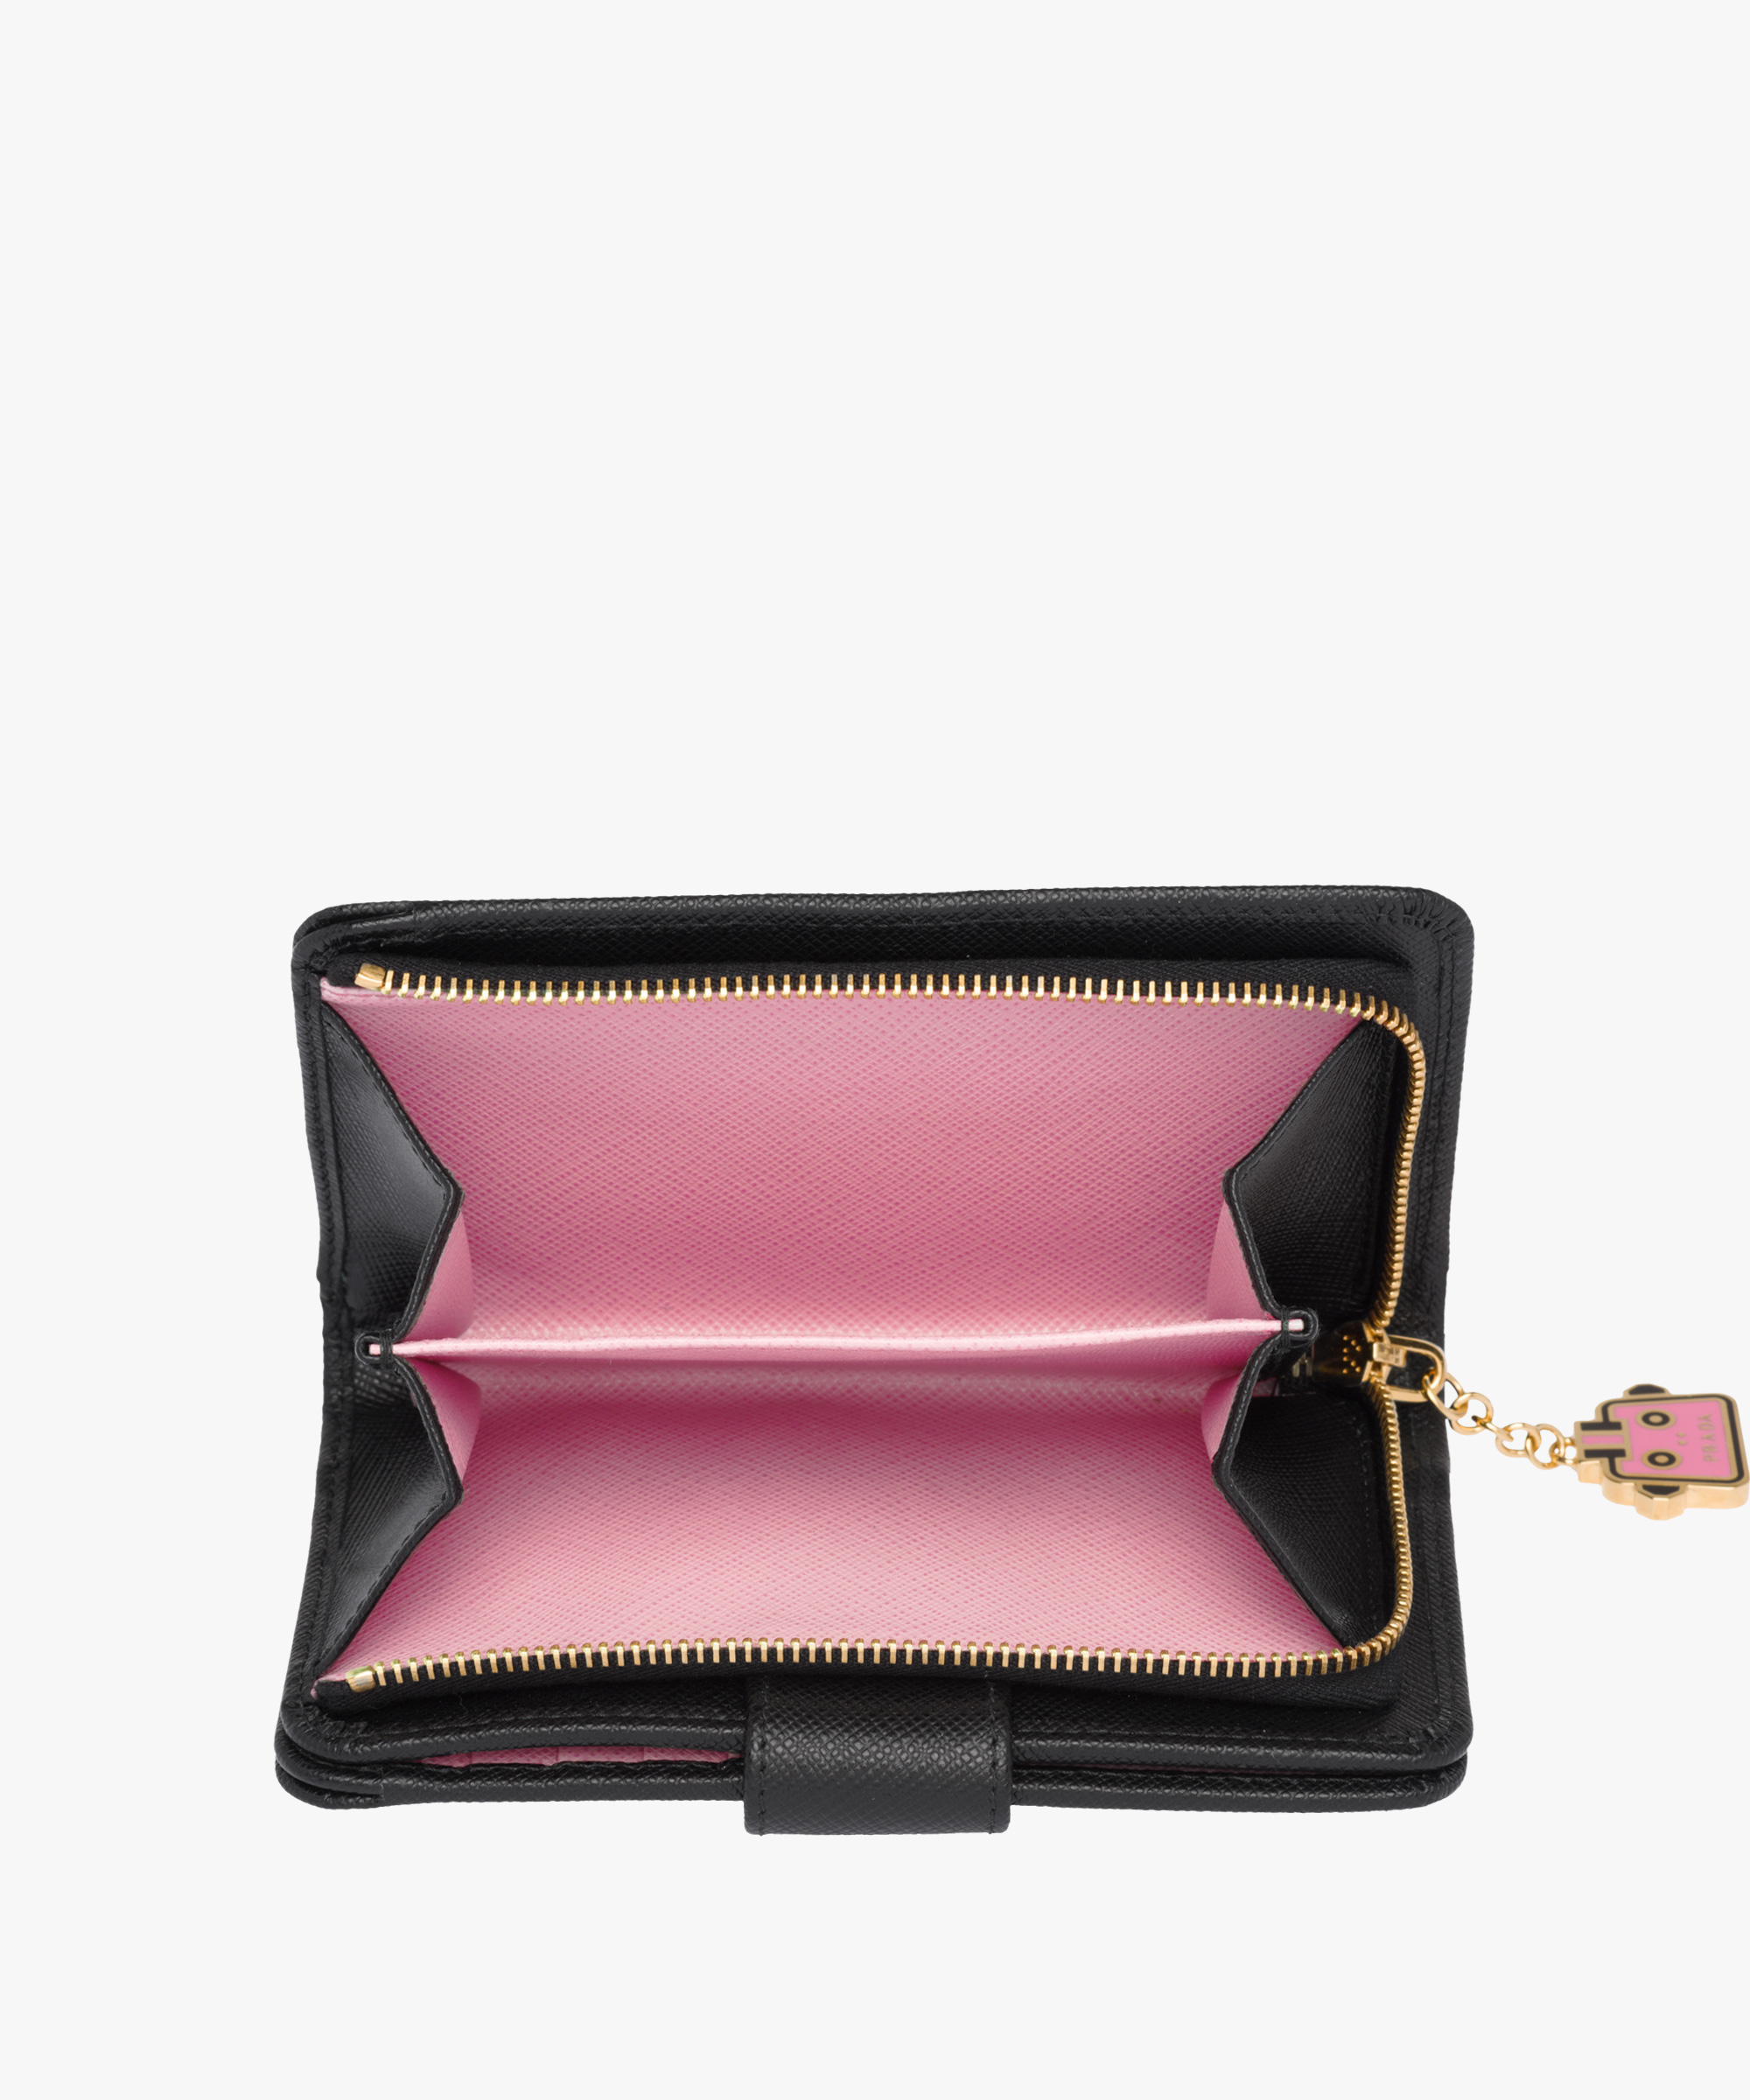 9908fca36db0 Medium Saffiano leather wallet Prada BLACK/BEGONIA PINK ...